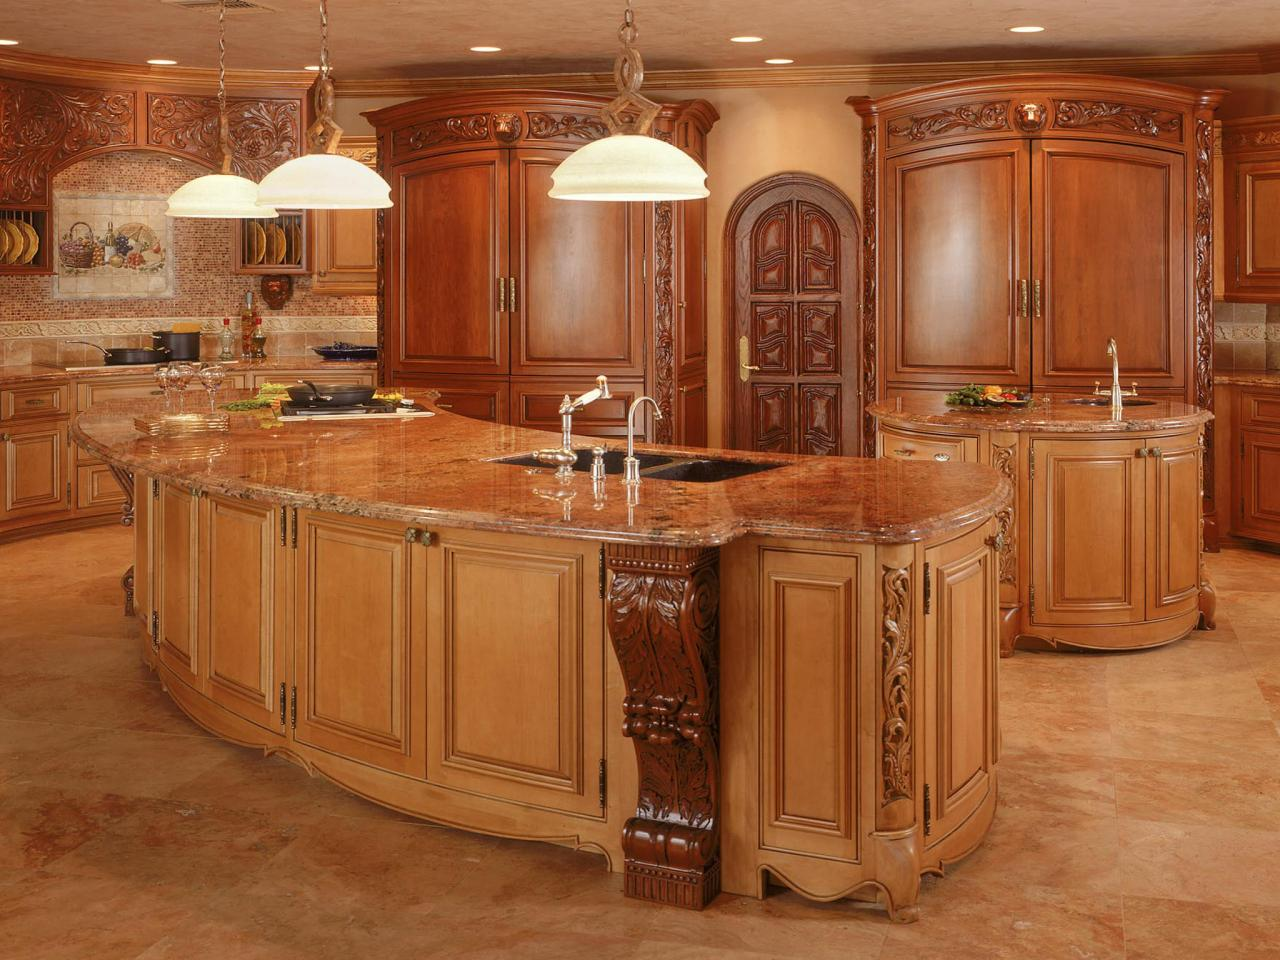 Victorian kitchen design pictures ideas tips from hgtv for Kitchen cabinets designs photos